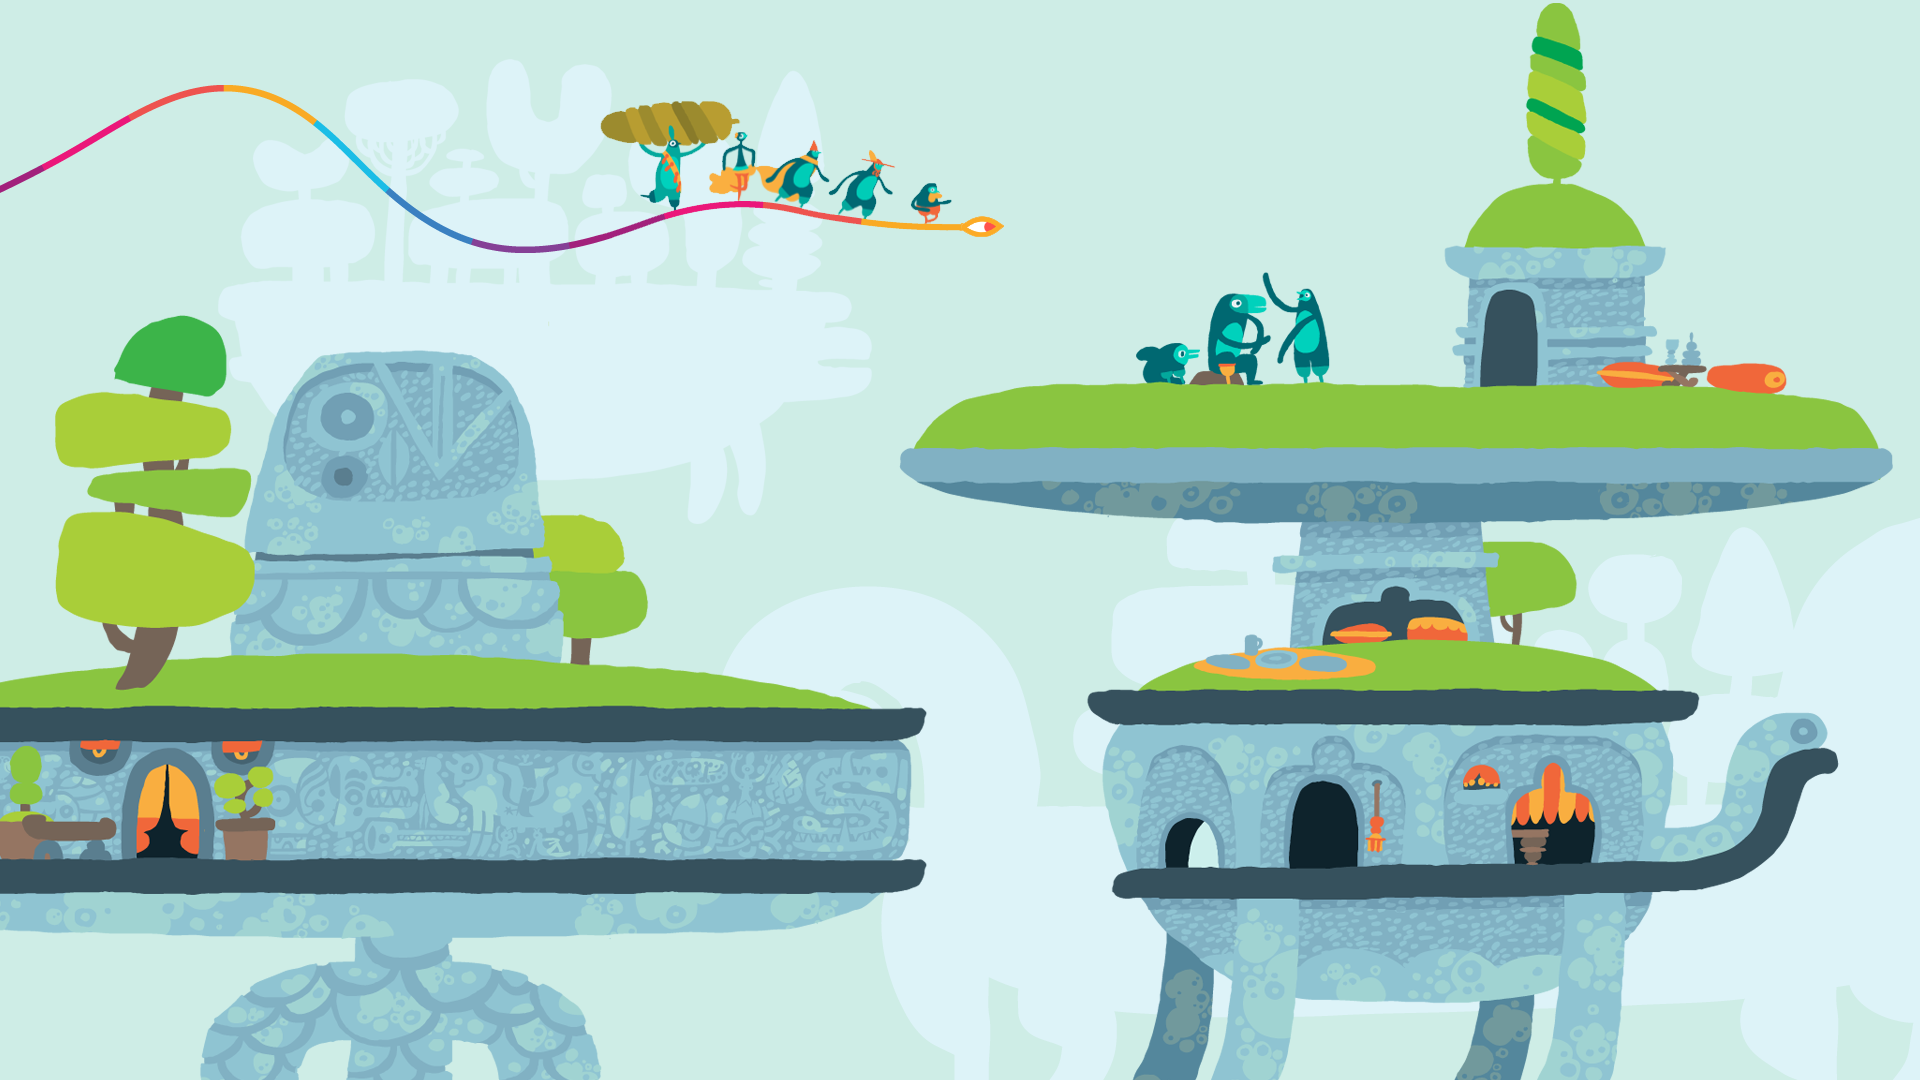 HOHOKUM_screenshot_kiteworld_170412